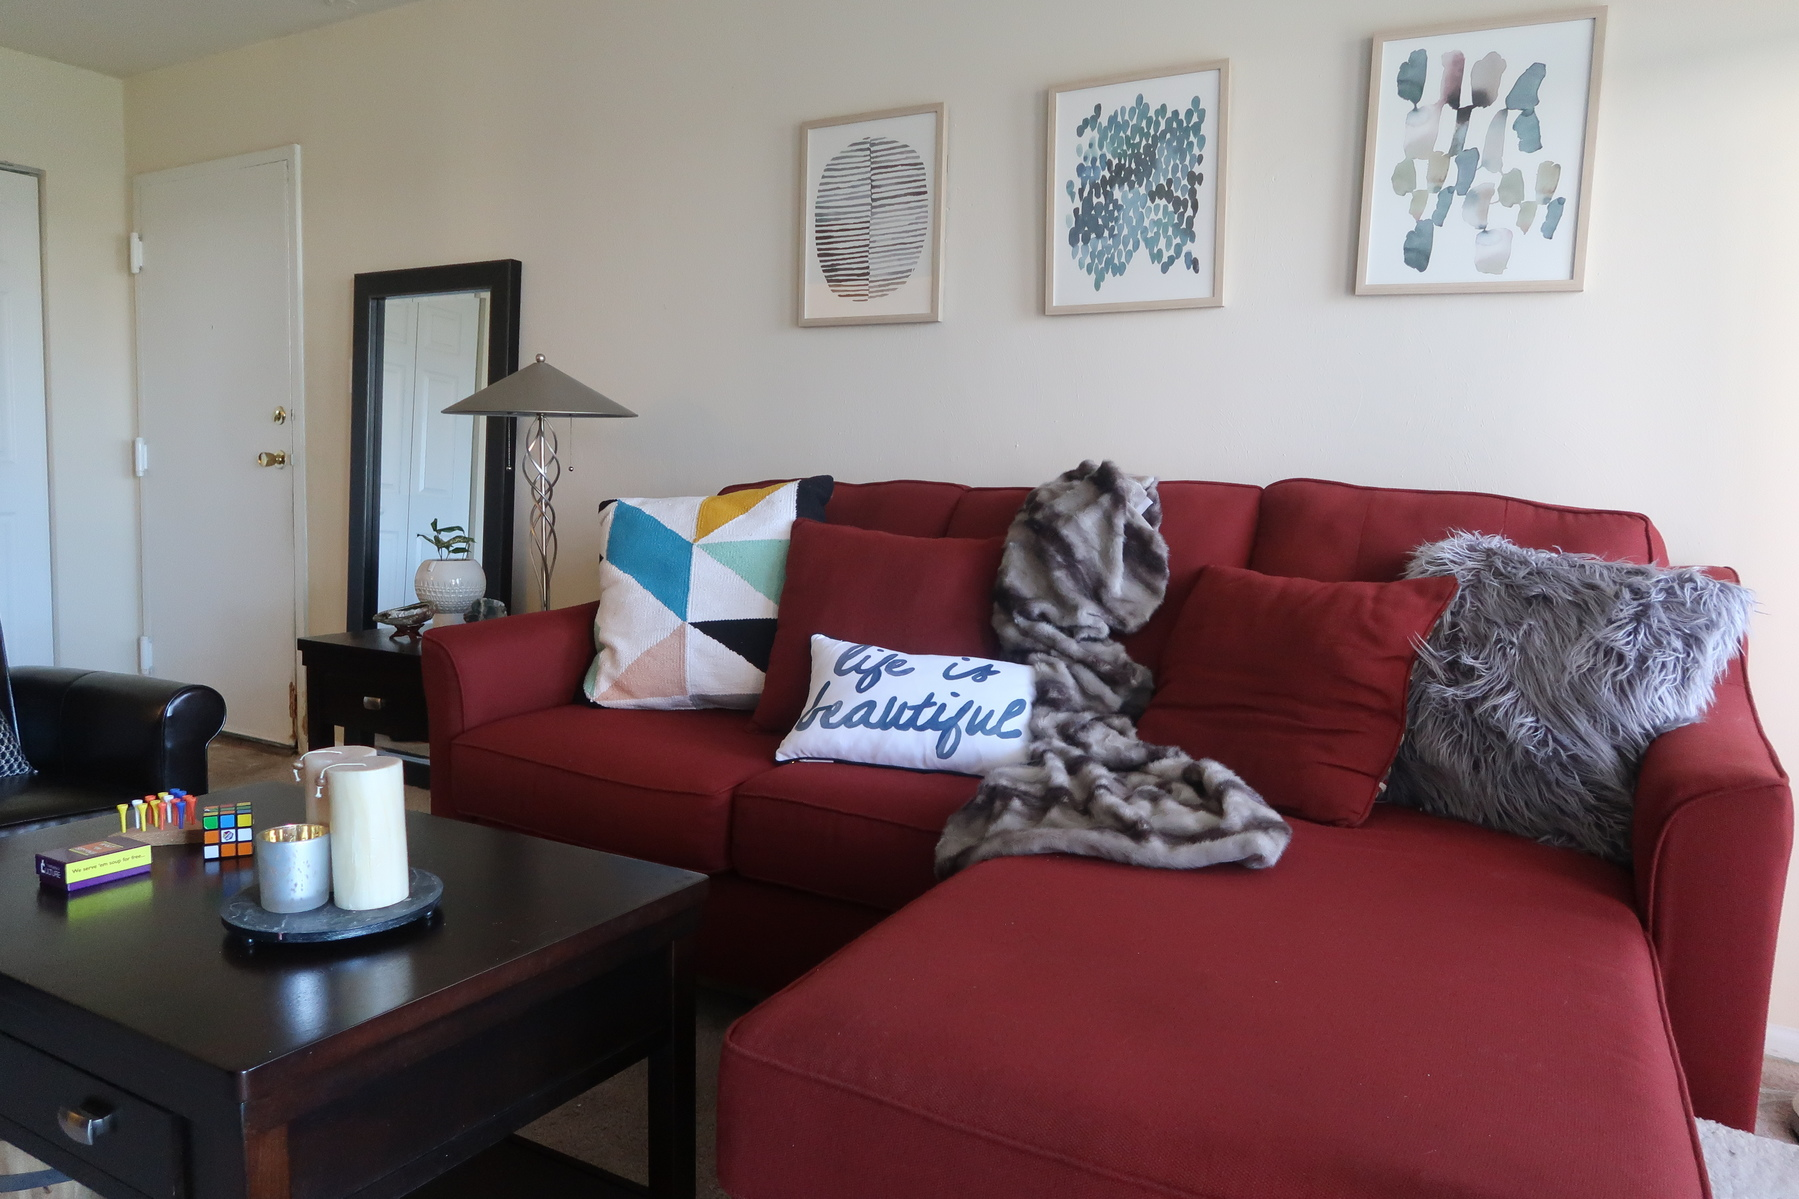 3 Ways To Work Around A Red Sofa When Styling Your Living Room Decor Naturally Glam